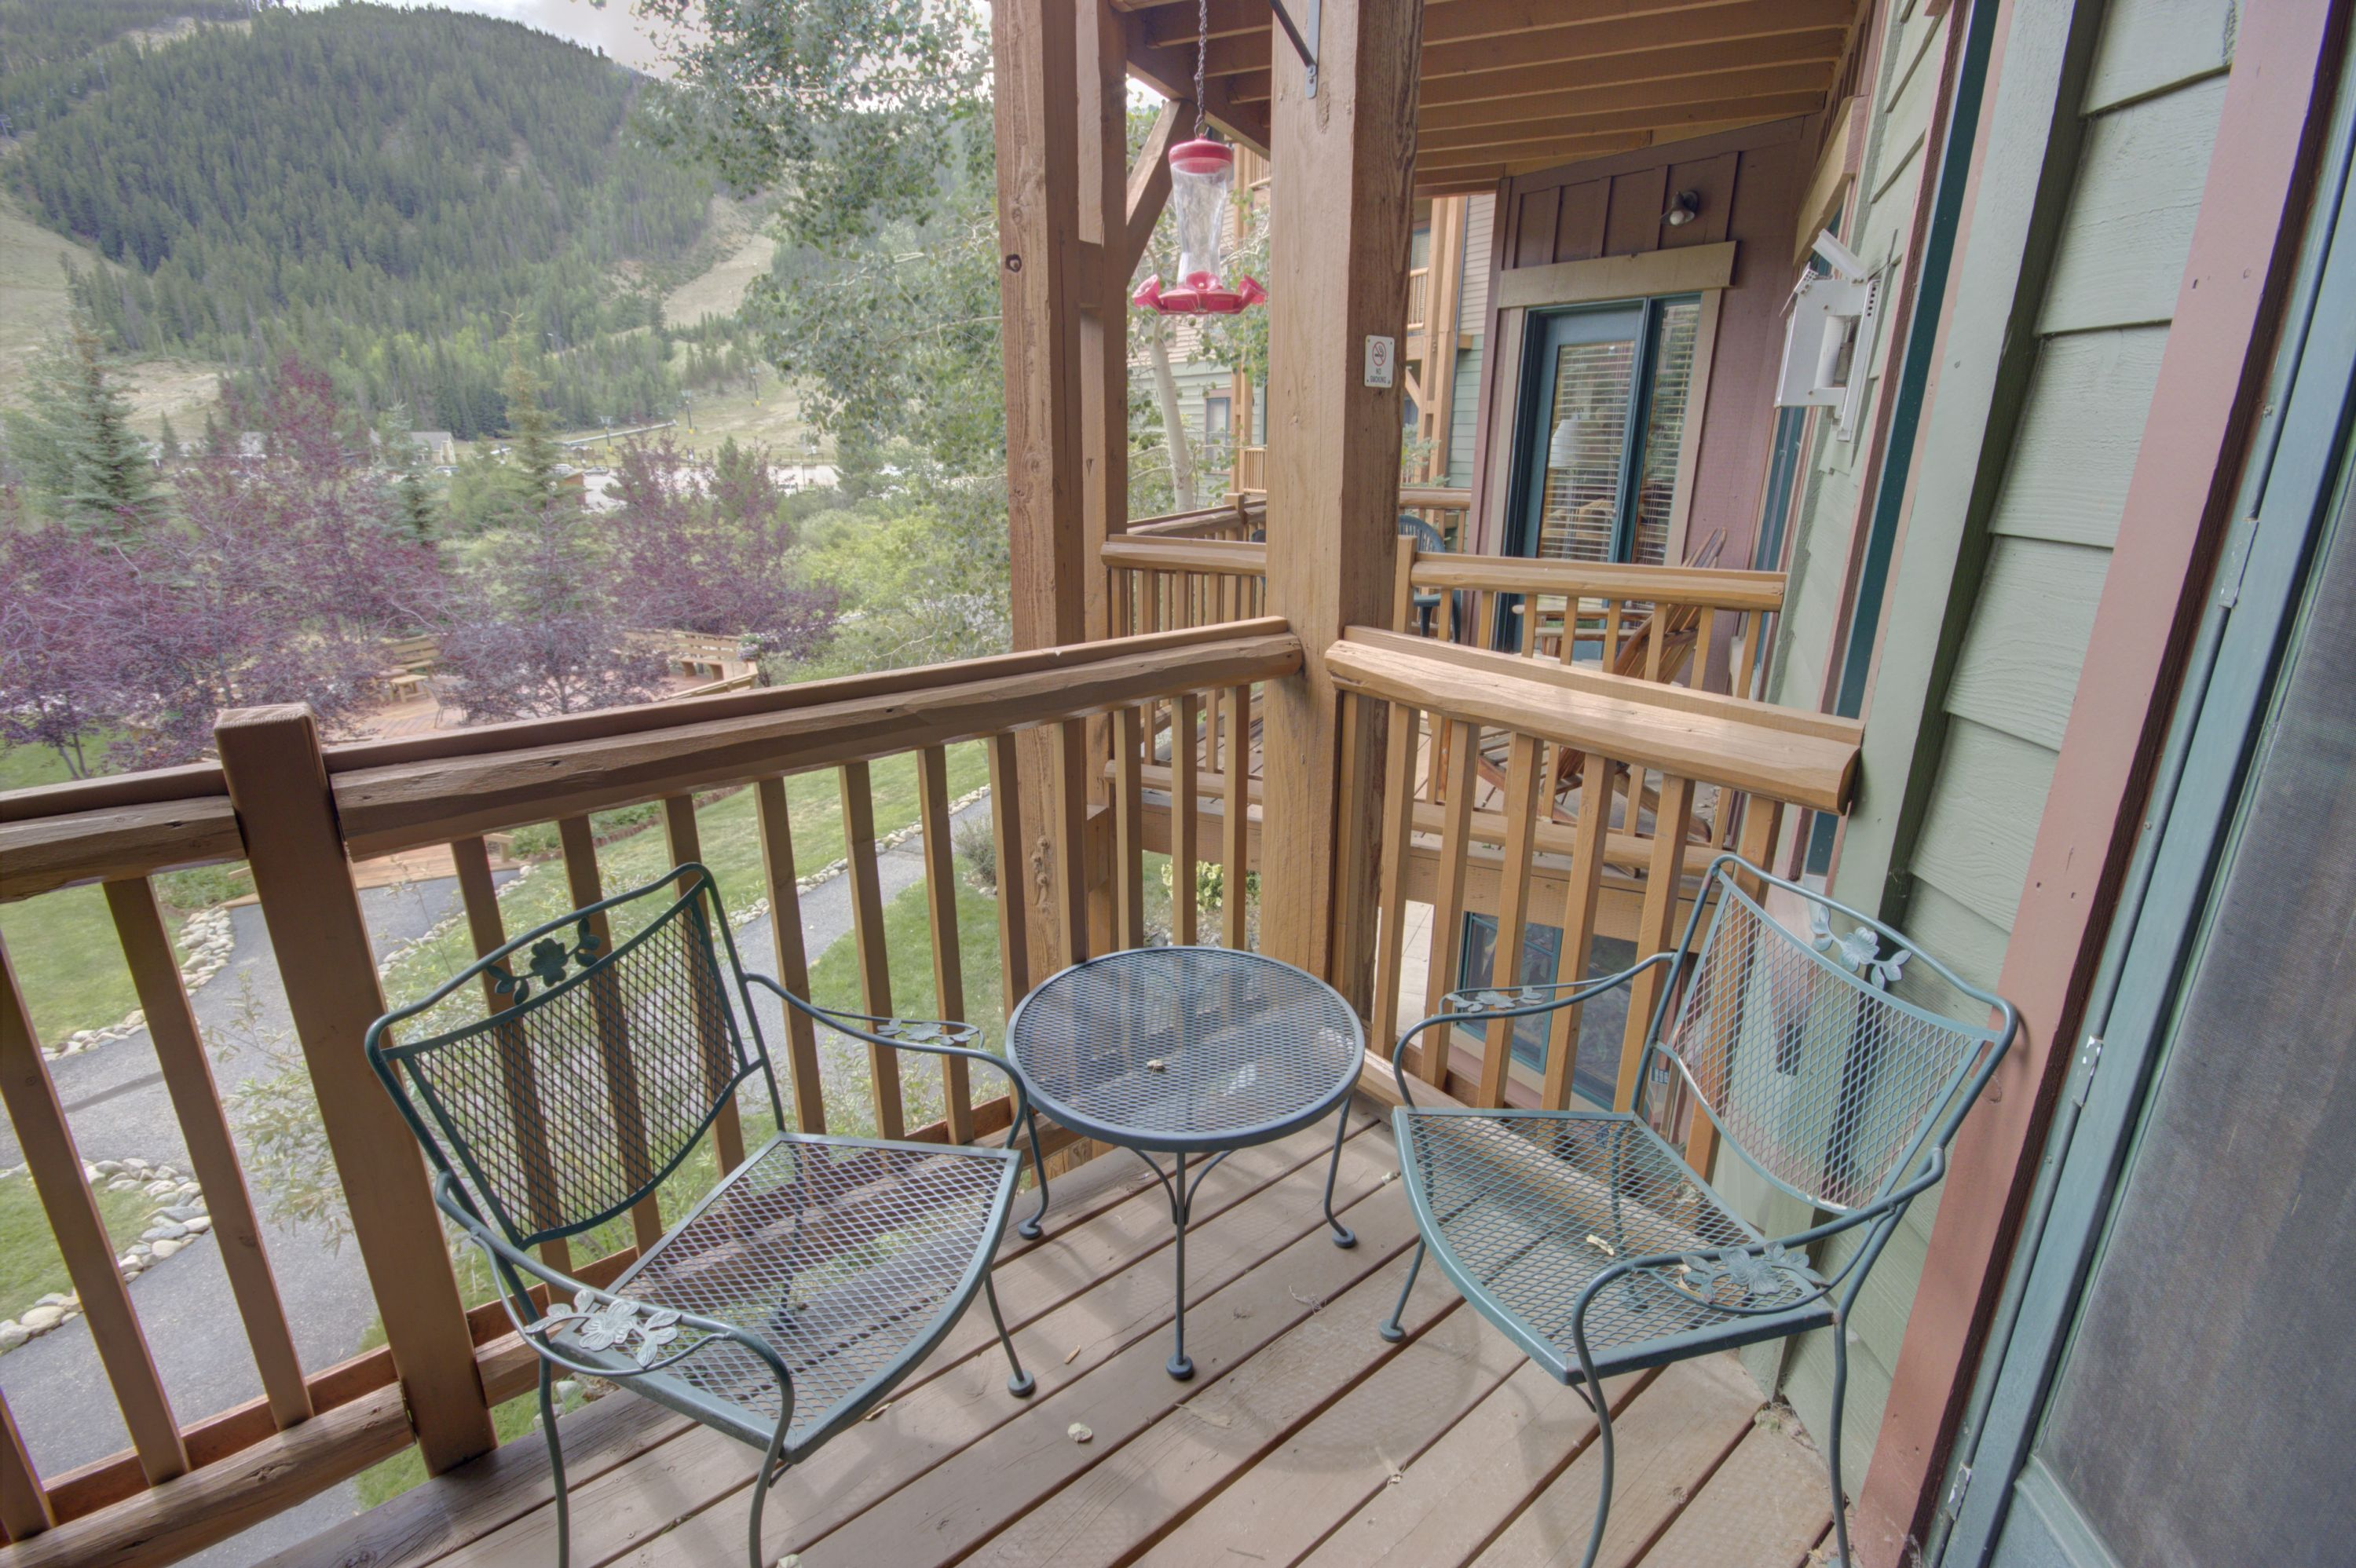 Balcony with outdoor furniture perfect for relaxing with friends and family